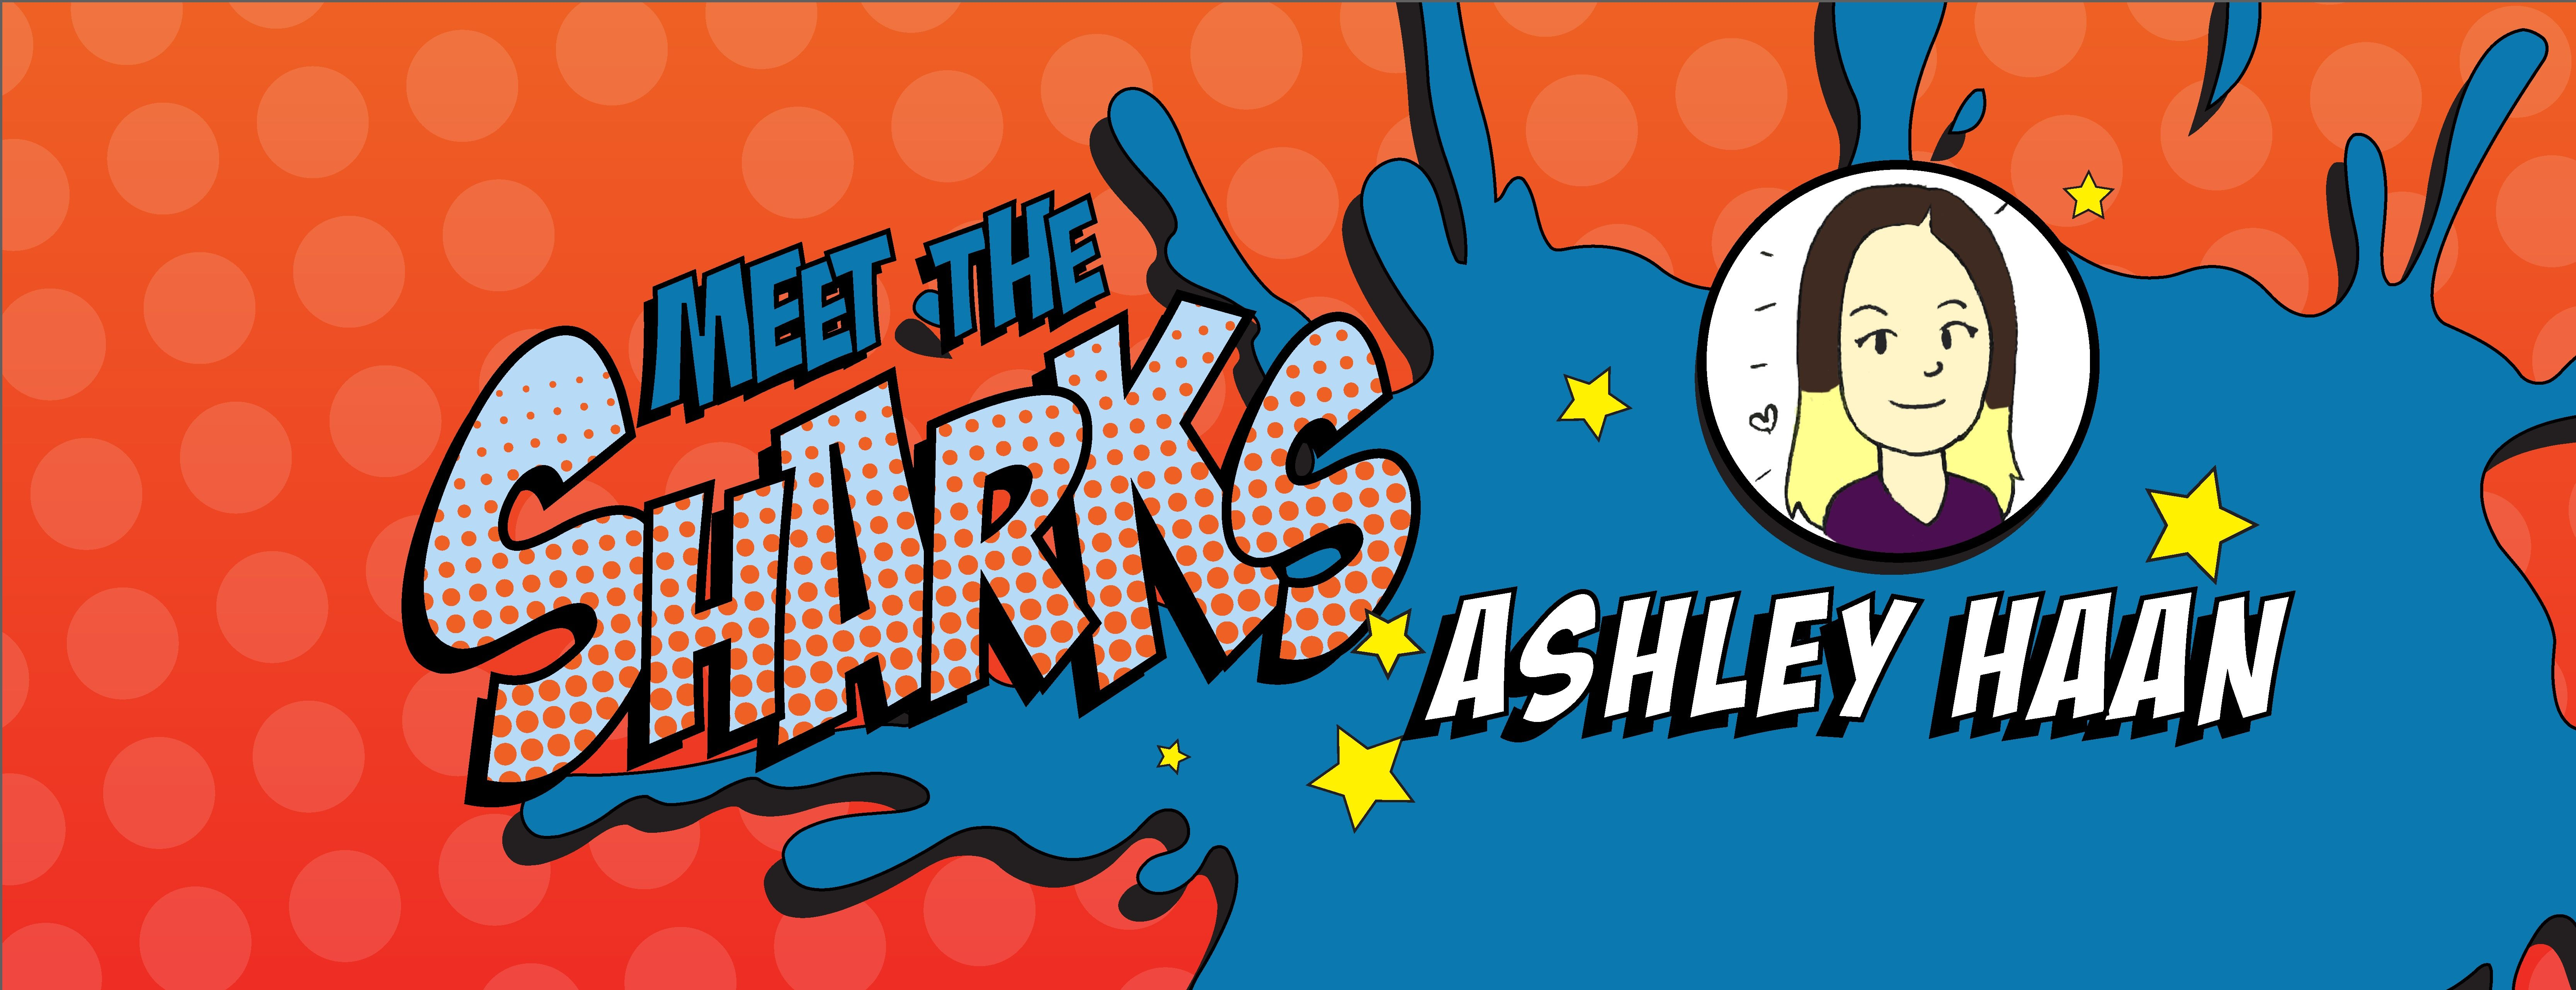 Meet the Sharks_Ashley_Haan.jpg